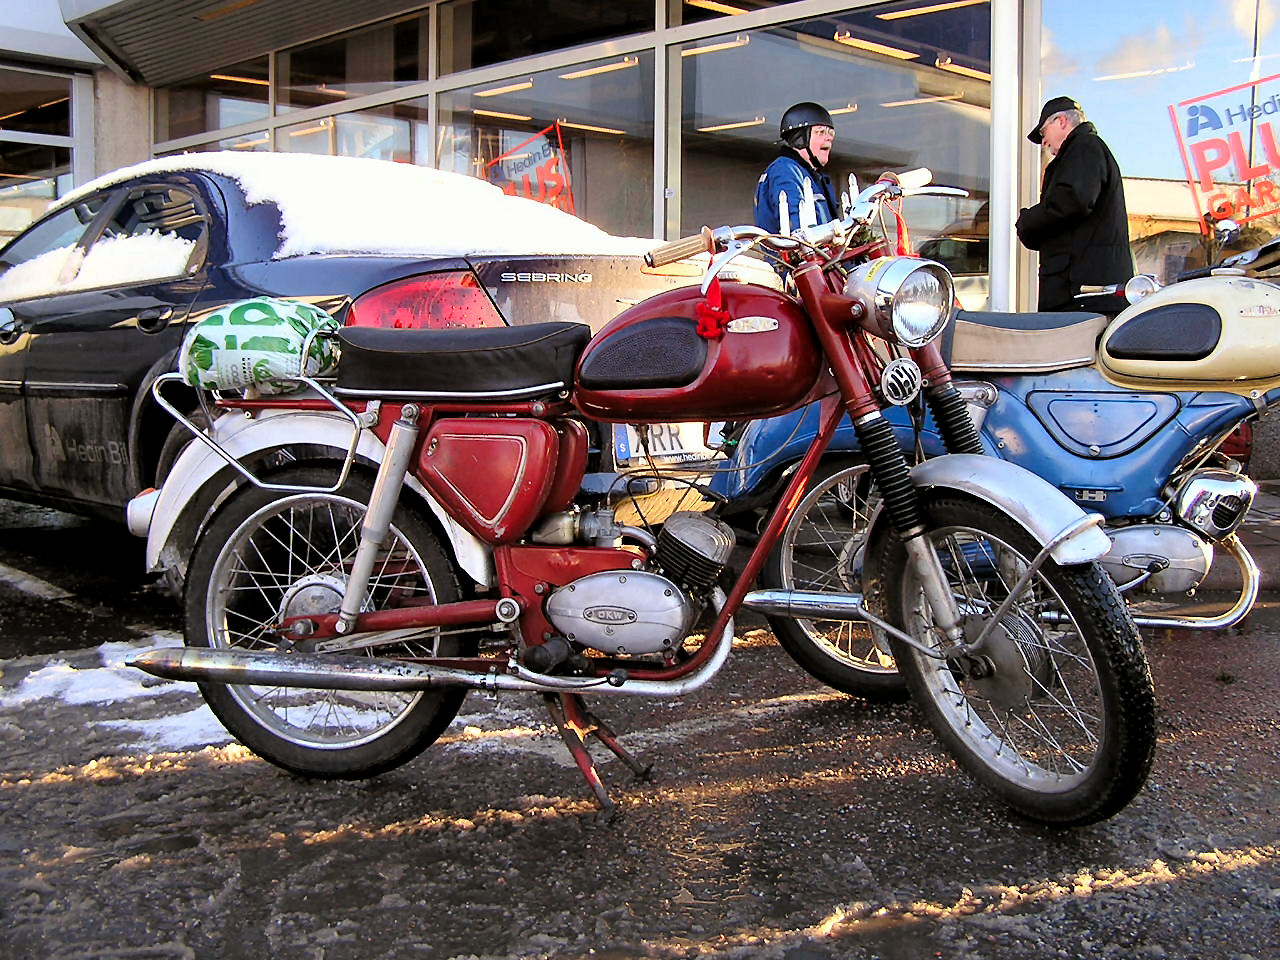 Dkw special photo - 1